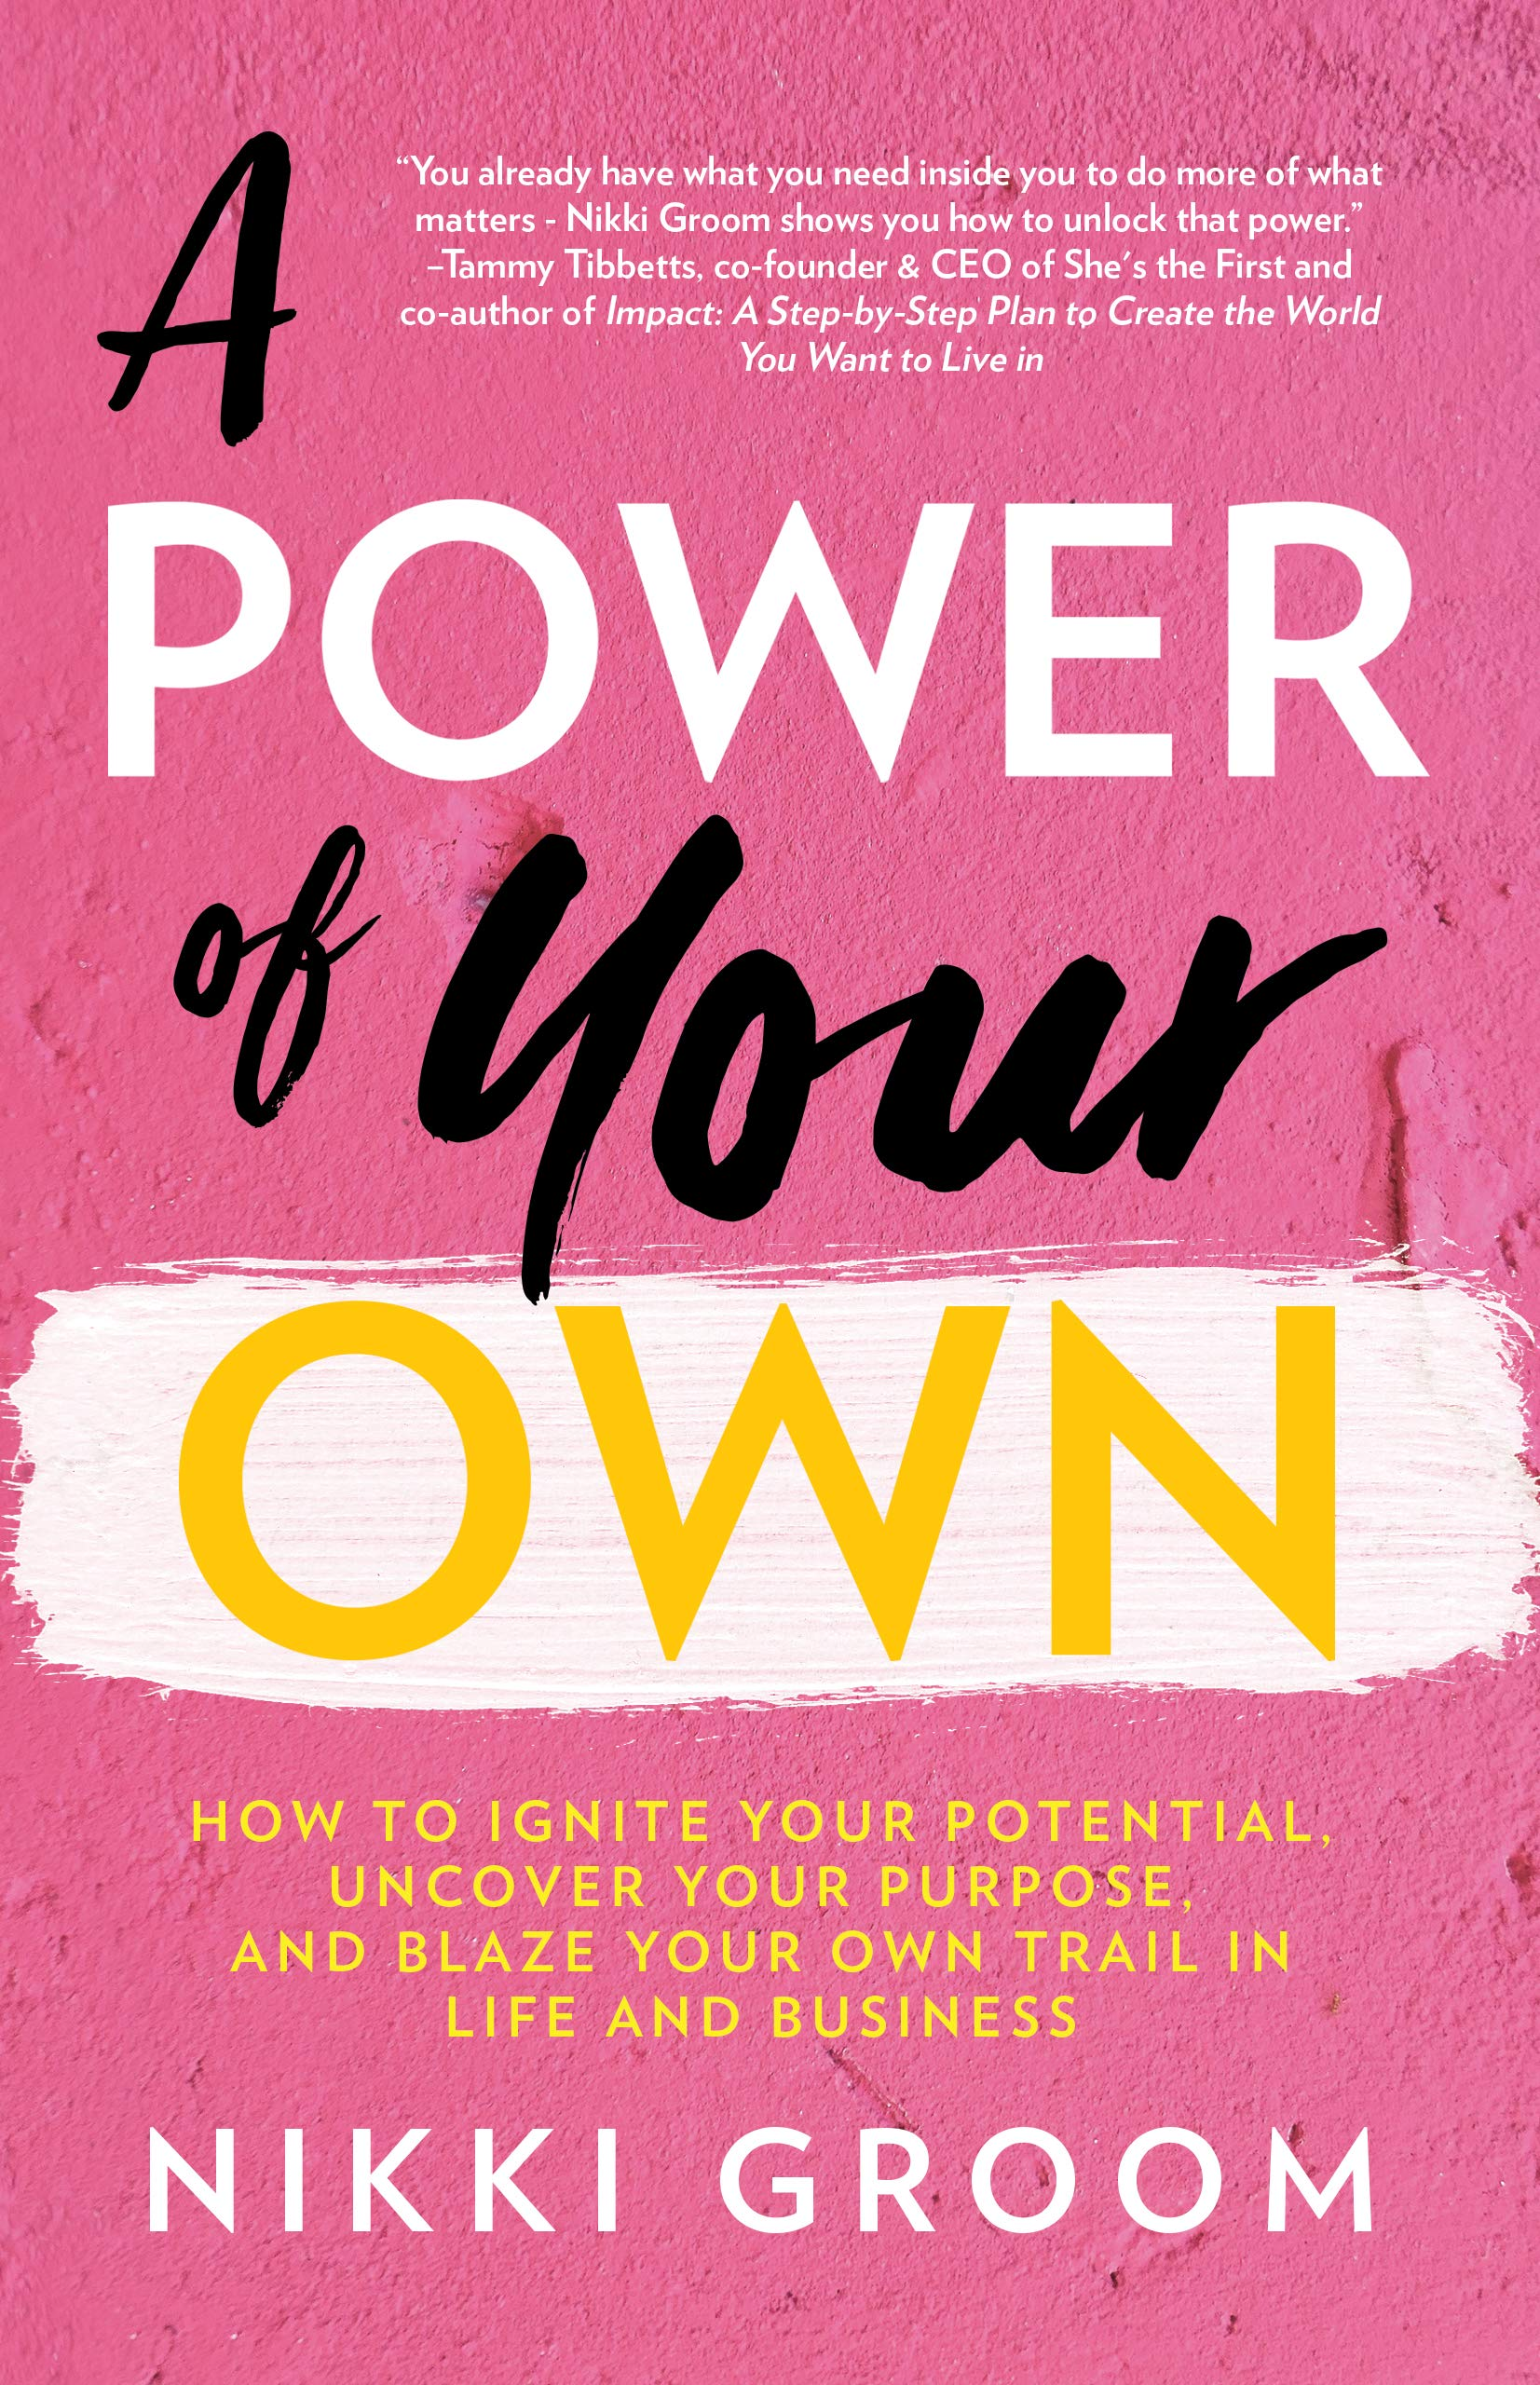 A Power of Your Own: How to Ignite Your Potential, Uncover Your Purpose, and Blaze Your Own Trail in Life and Business